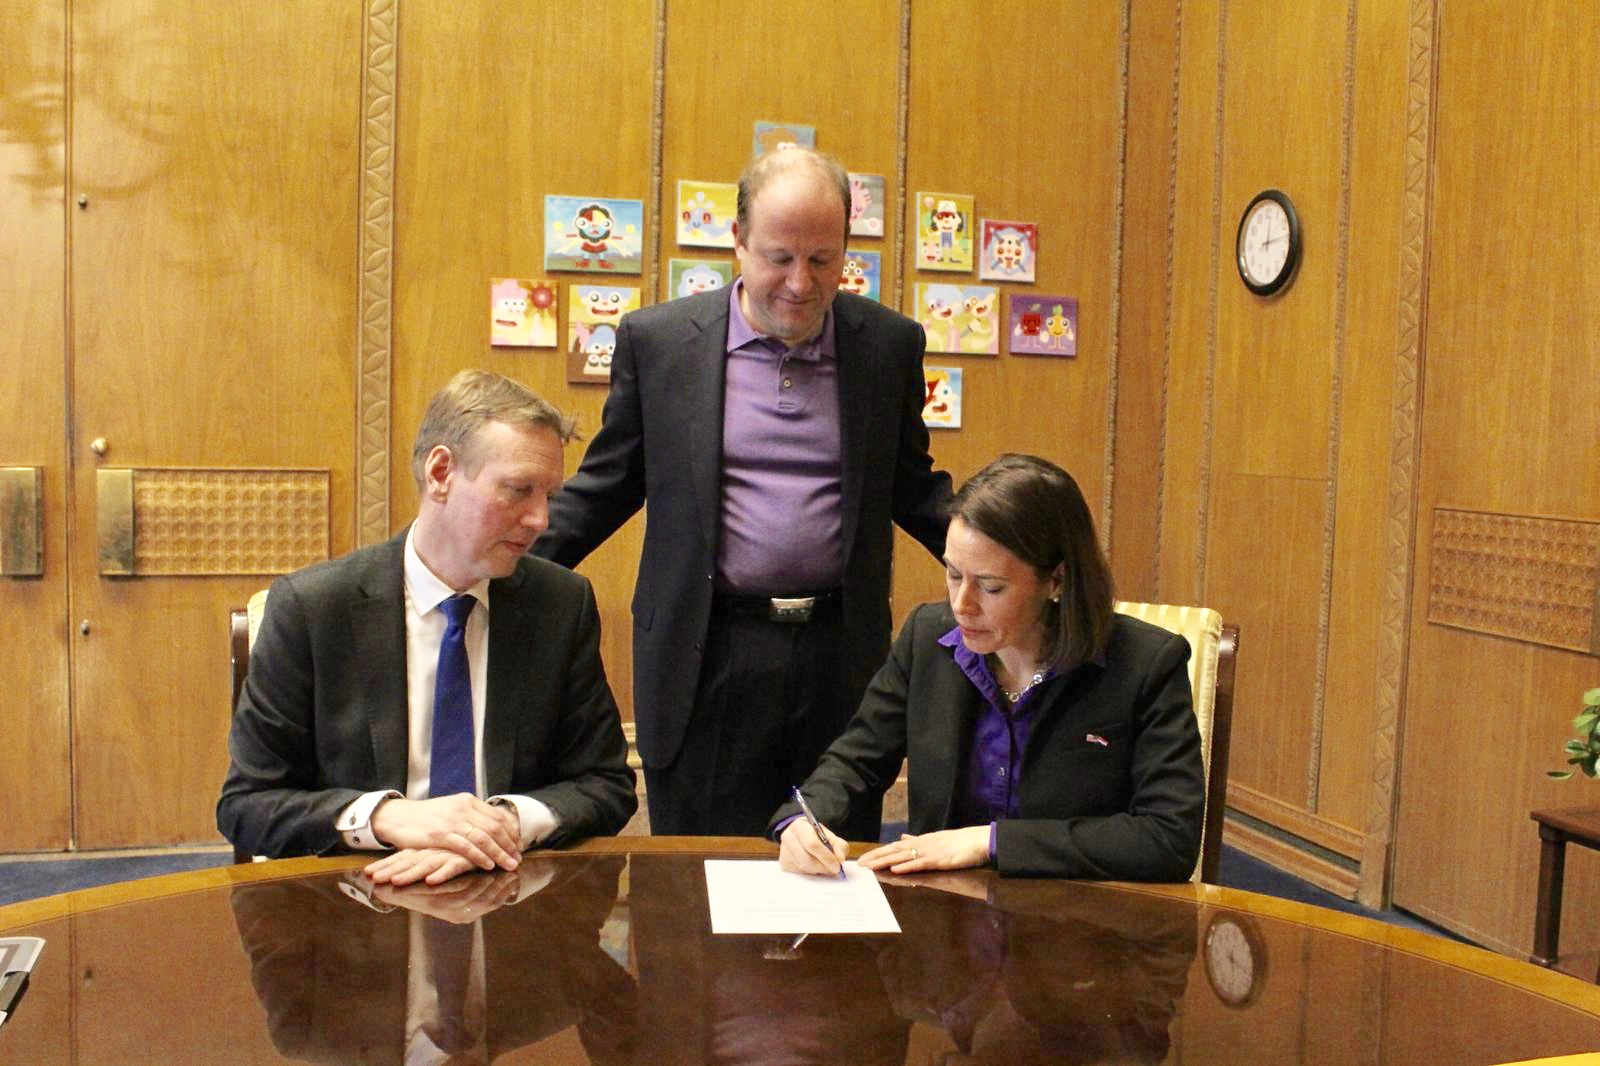 The Netherlands and Colorado strengthen ties with new Honorary Consul